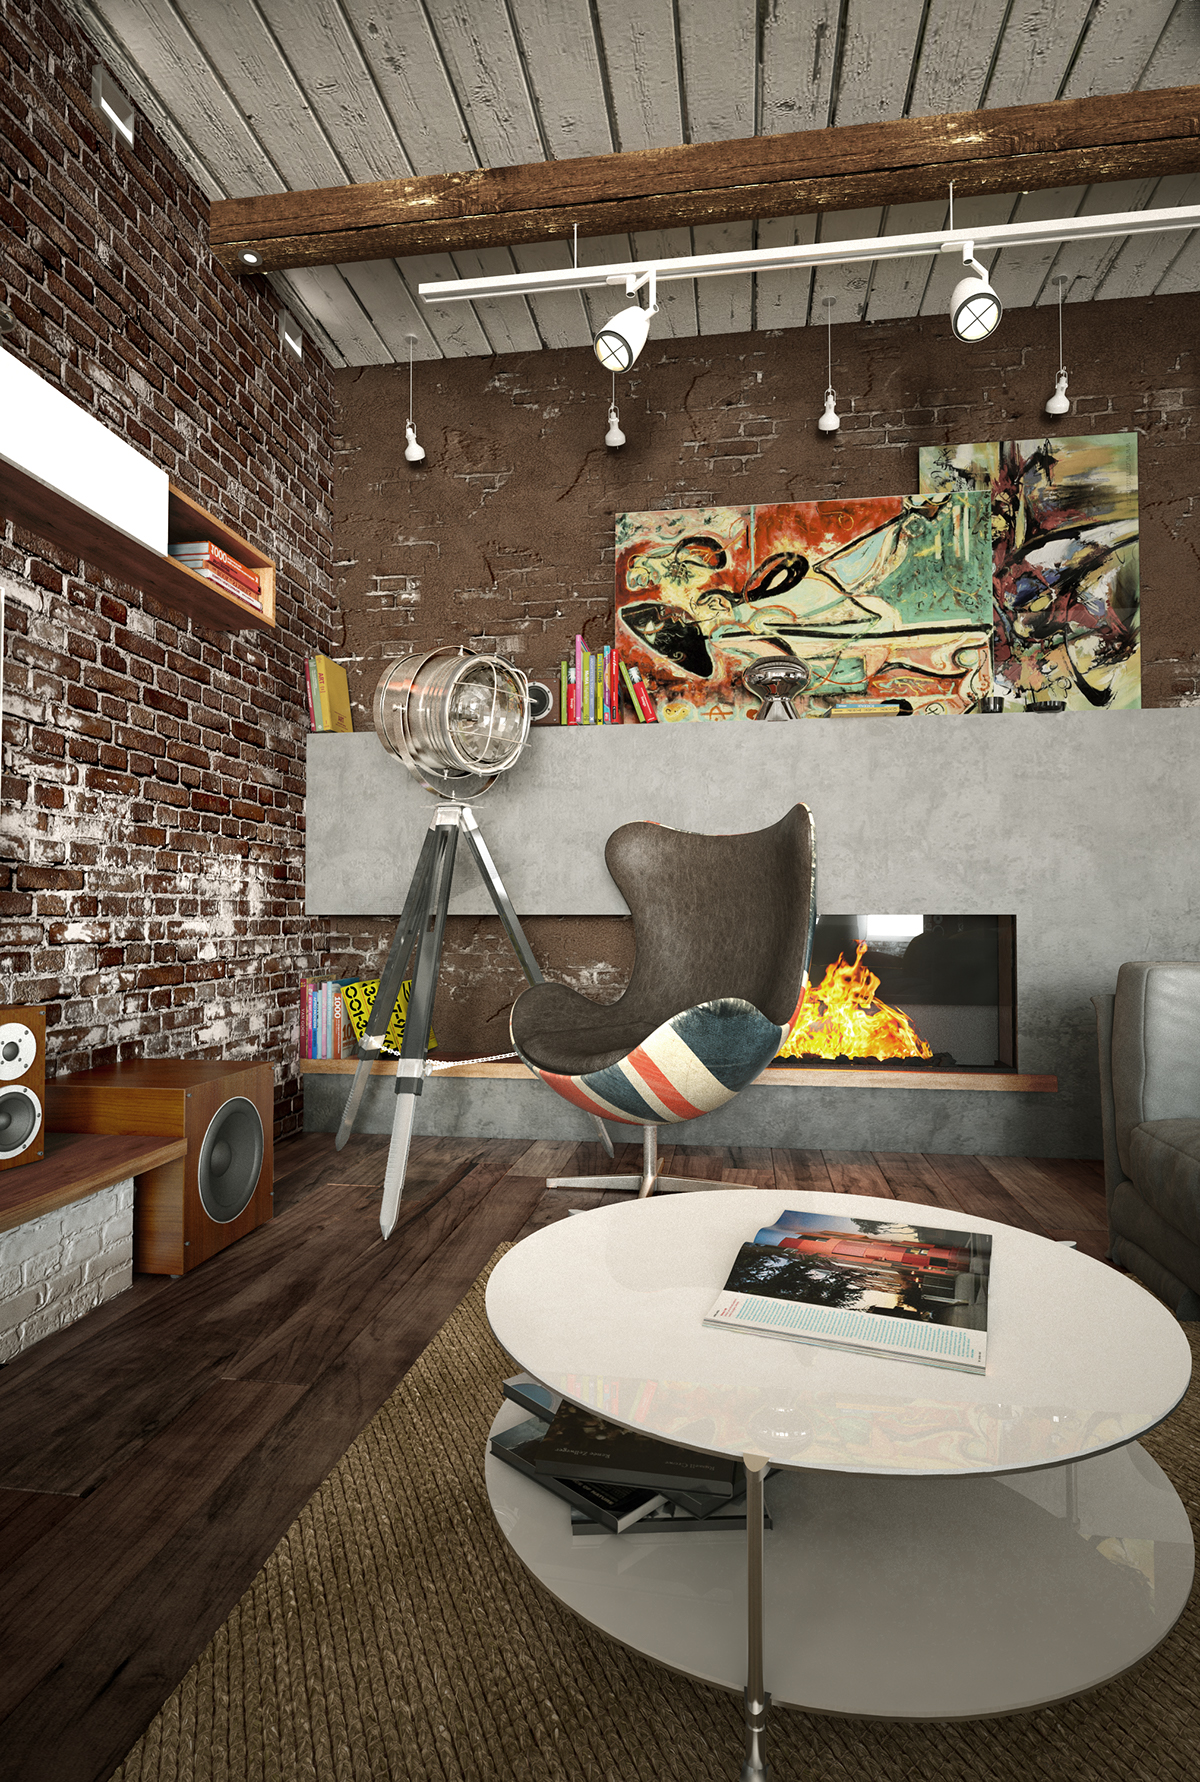 There's a concrete fireplace wall and a cool British inspired chair